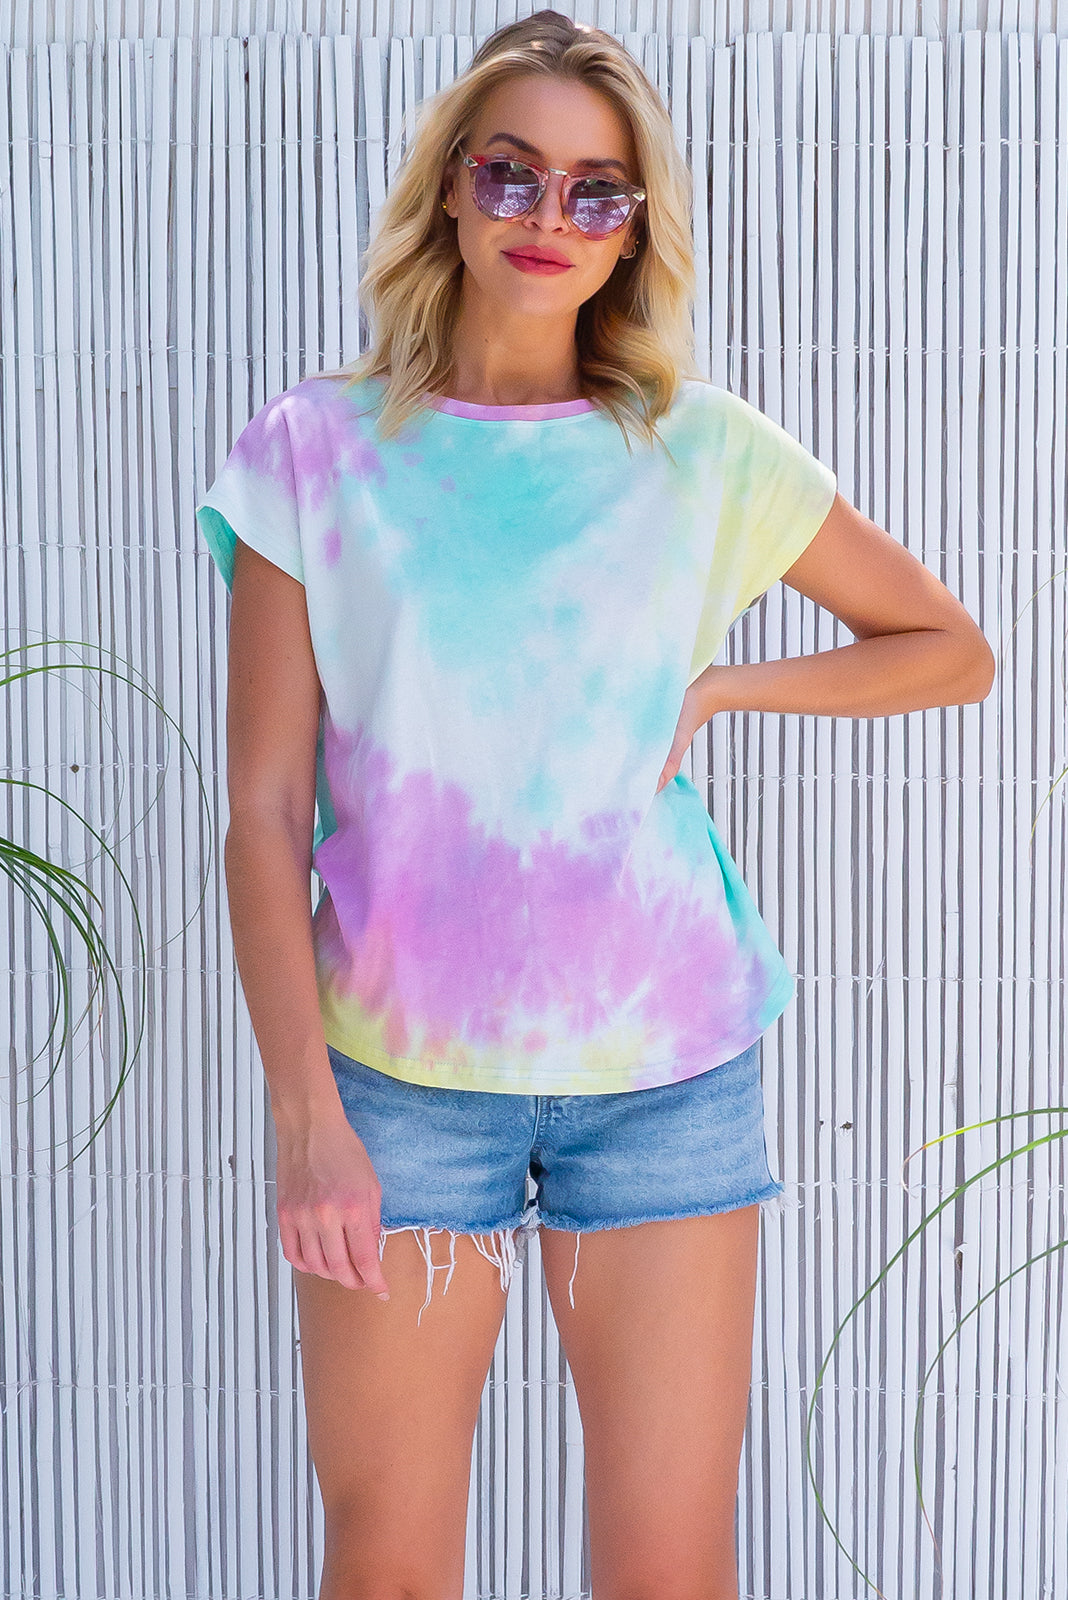 The Phoenix Rainbow Tie Dye Tee is a cool 60s inspired T-shirt featuring knit 100% Cotton in white, pink, yellow and mint tie dye.